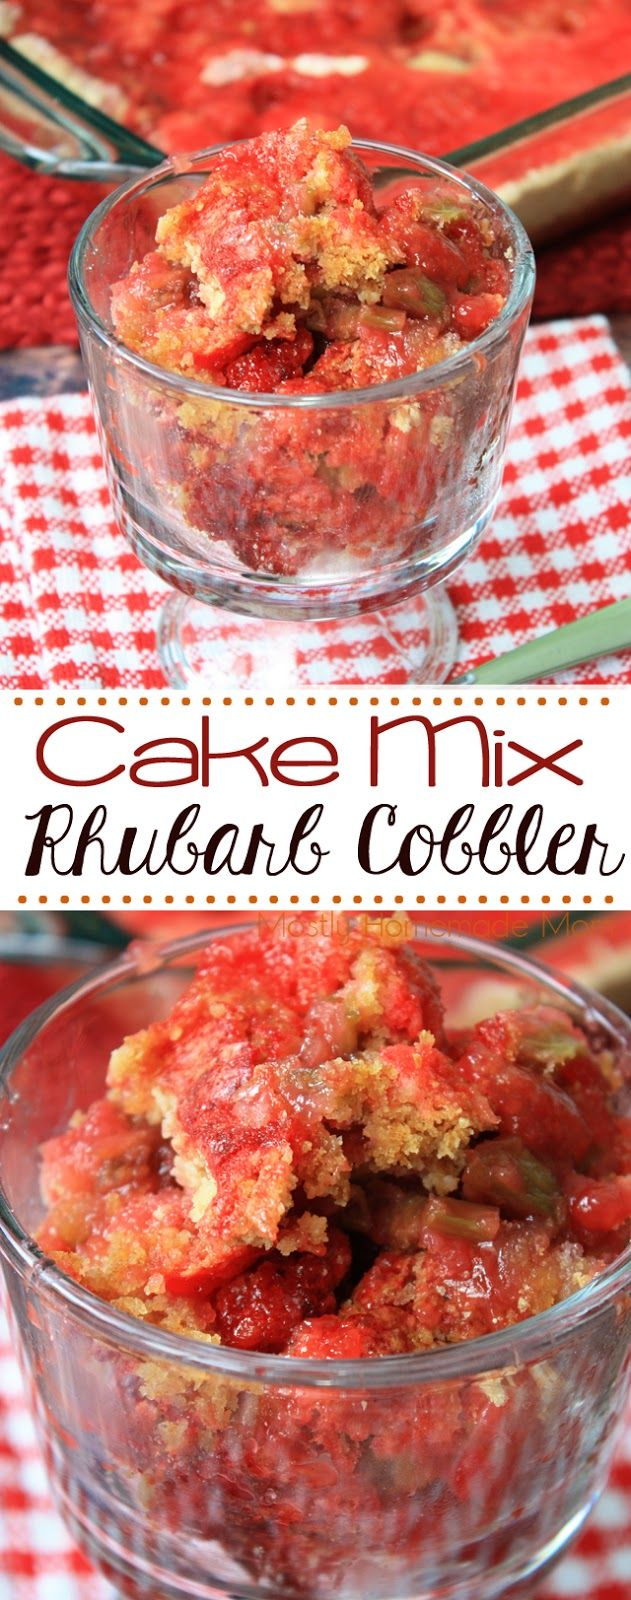 Cake Mix Rhubarb Cobbler - This easy rhubarb cobbler made with cake mix is ready in minutes! Fresh rhubarb from your garden is perfect in this simple dessert!